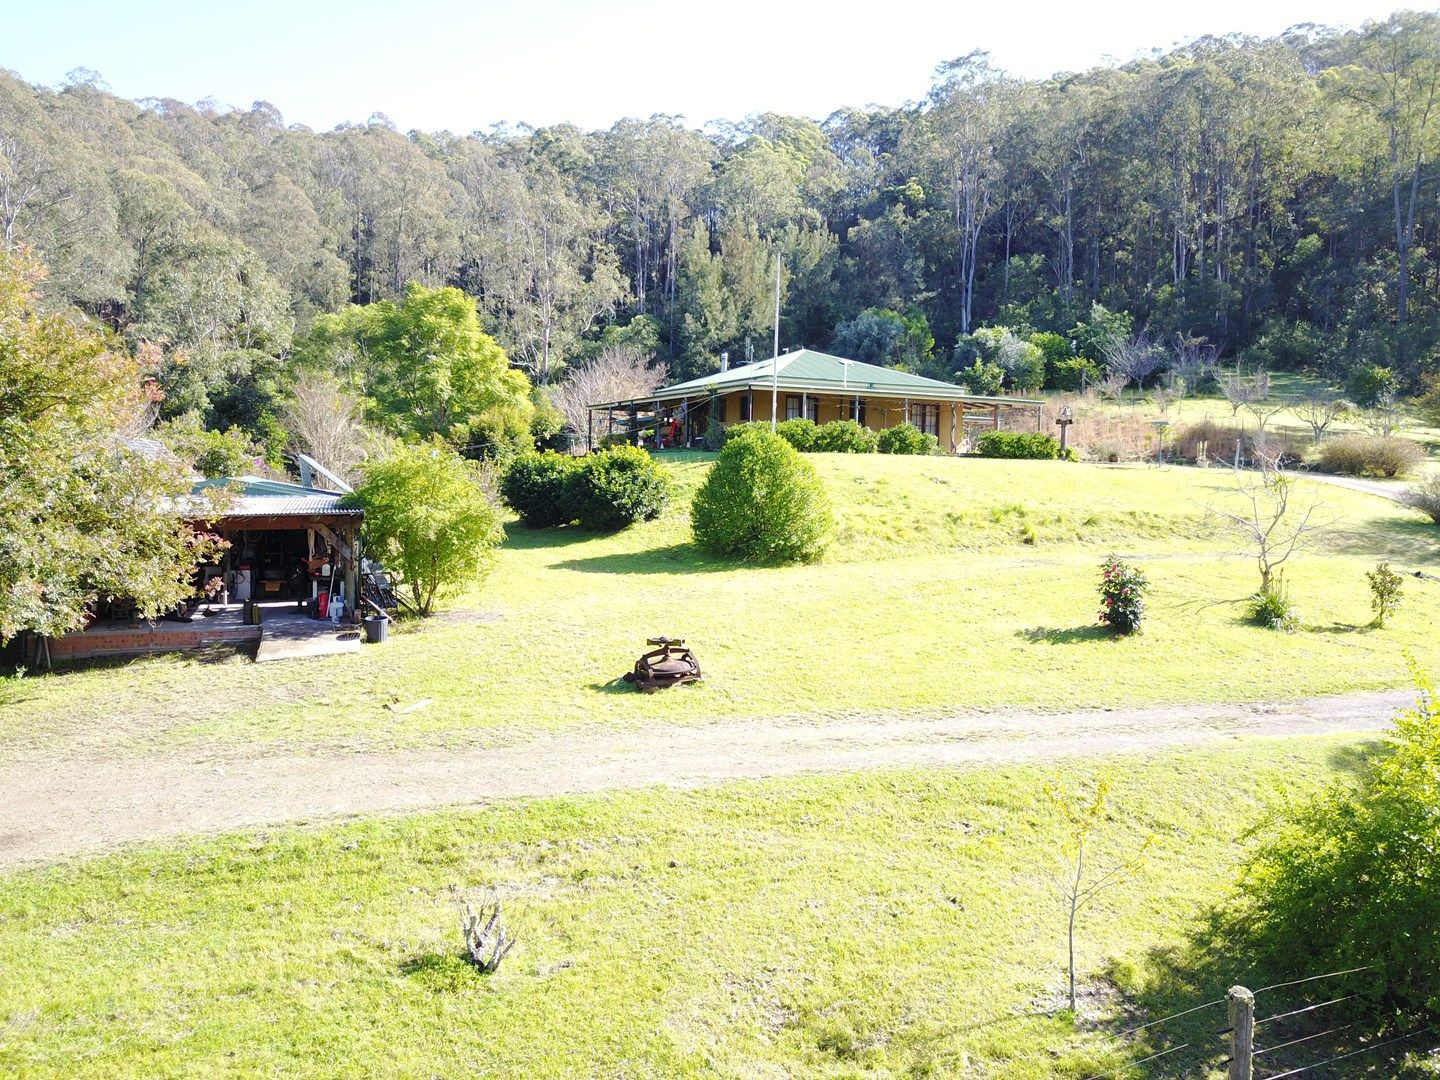 710 Black Camp Road, CAMBRA Via, Dungog NSW 2420, Image 0